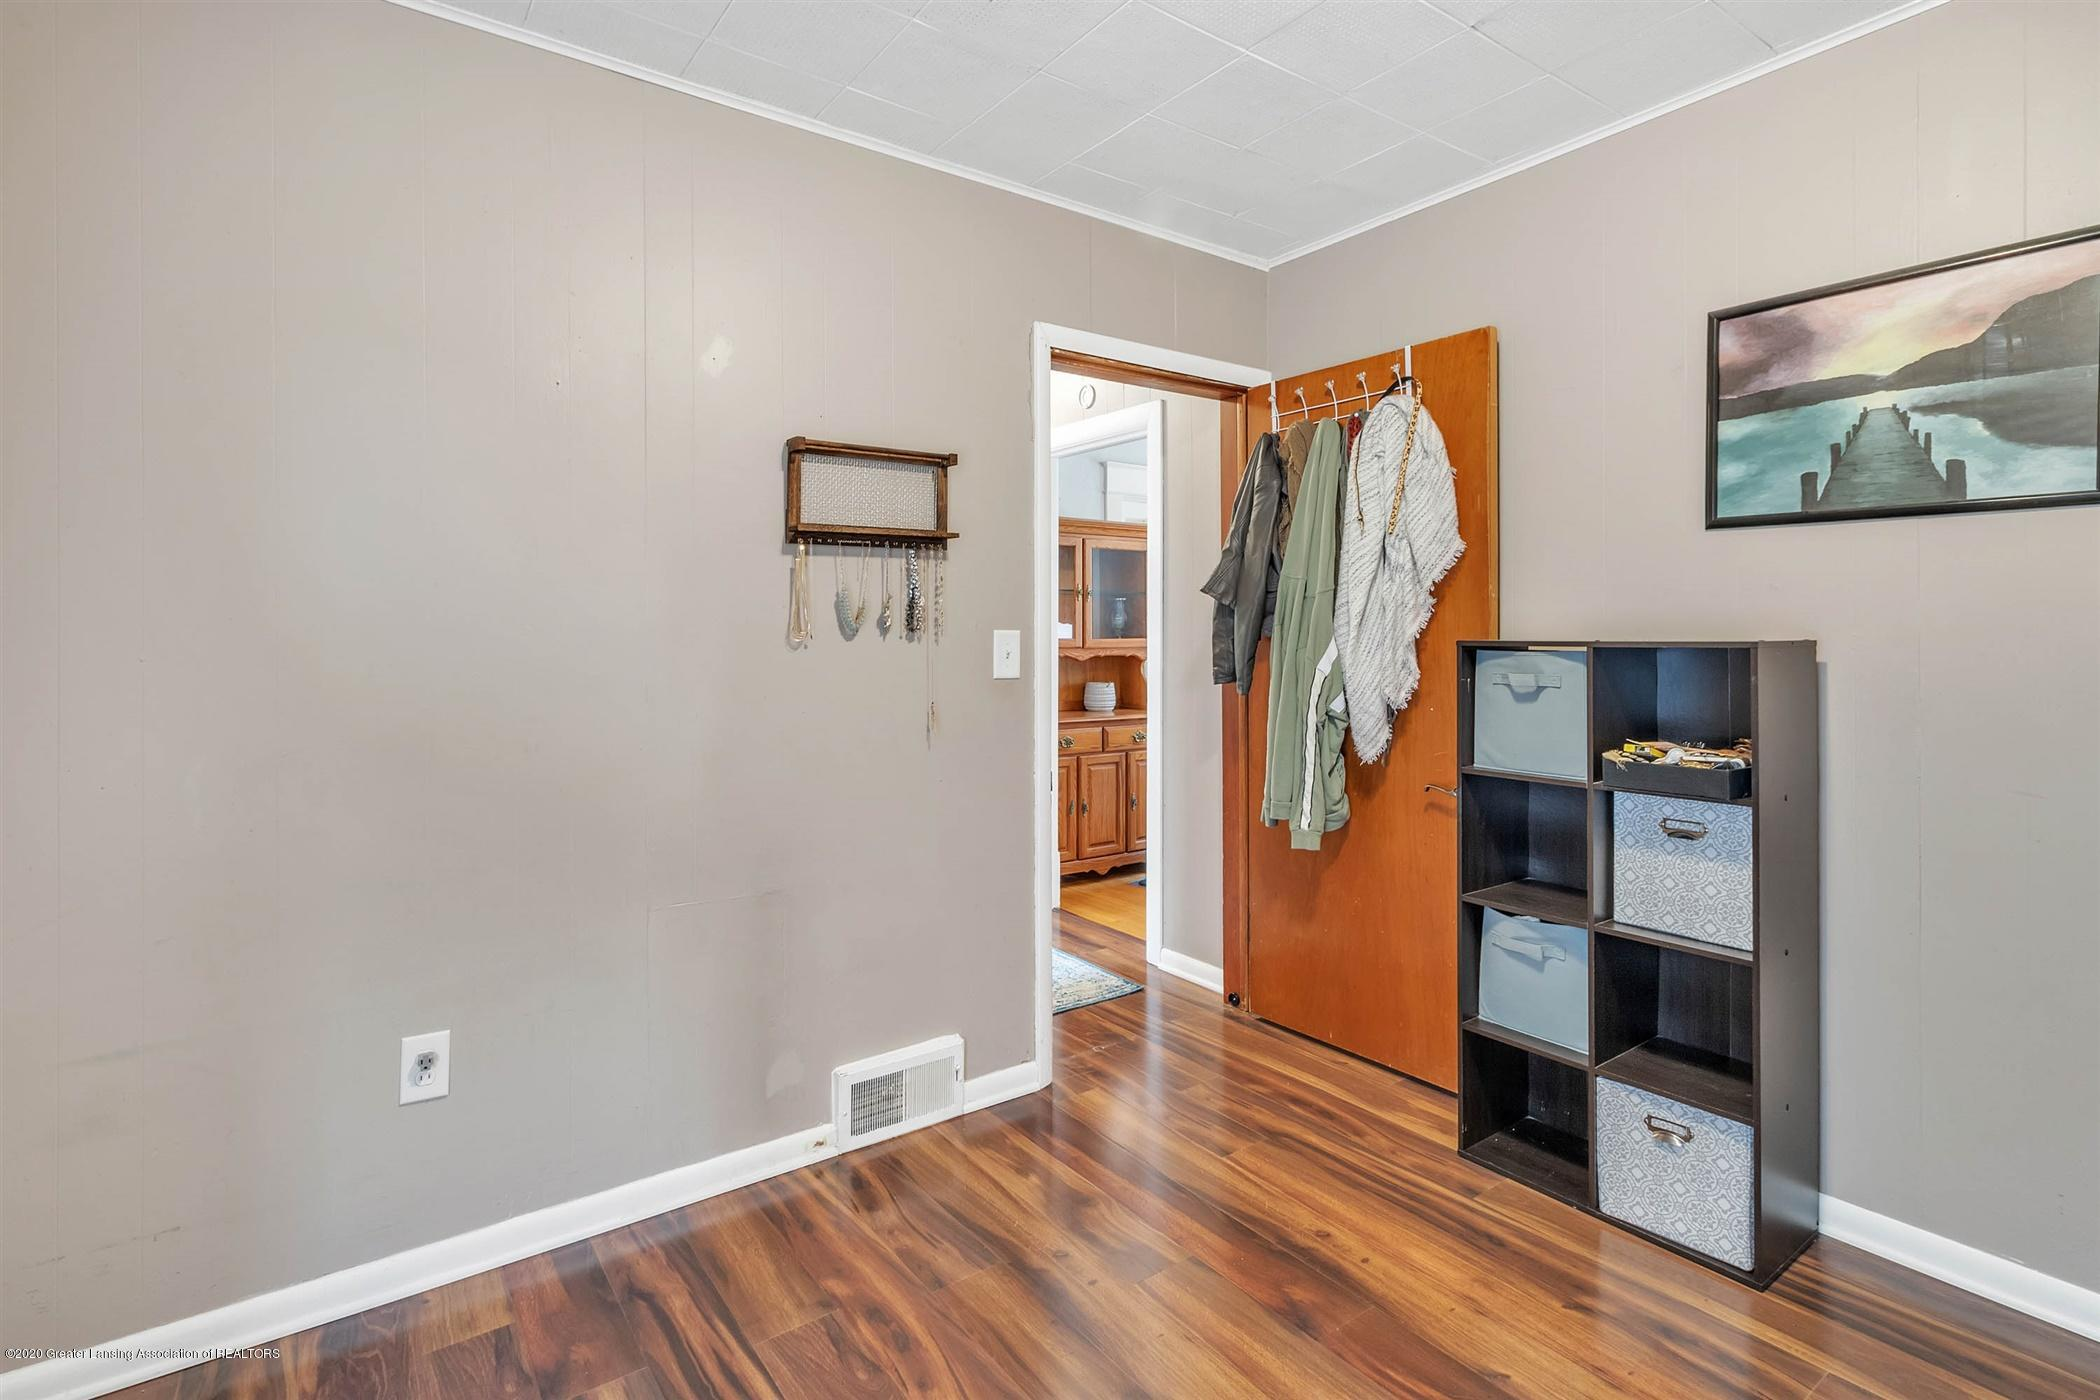 2127 Forest Ave - 26-2127 Forest Ave-WindowStill-Real - 26